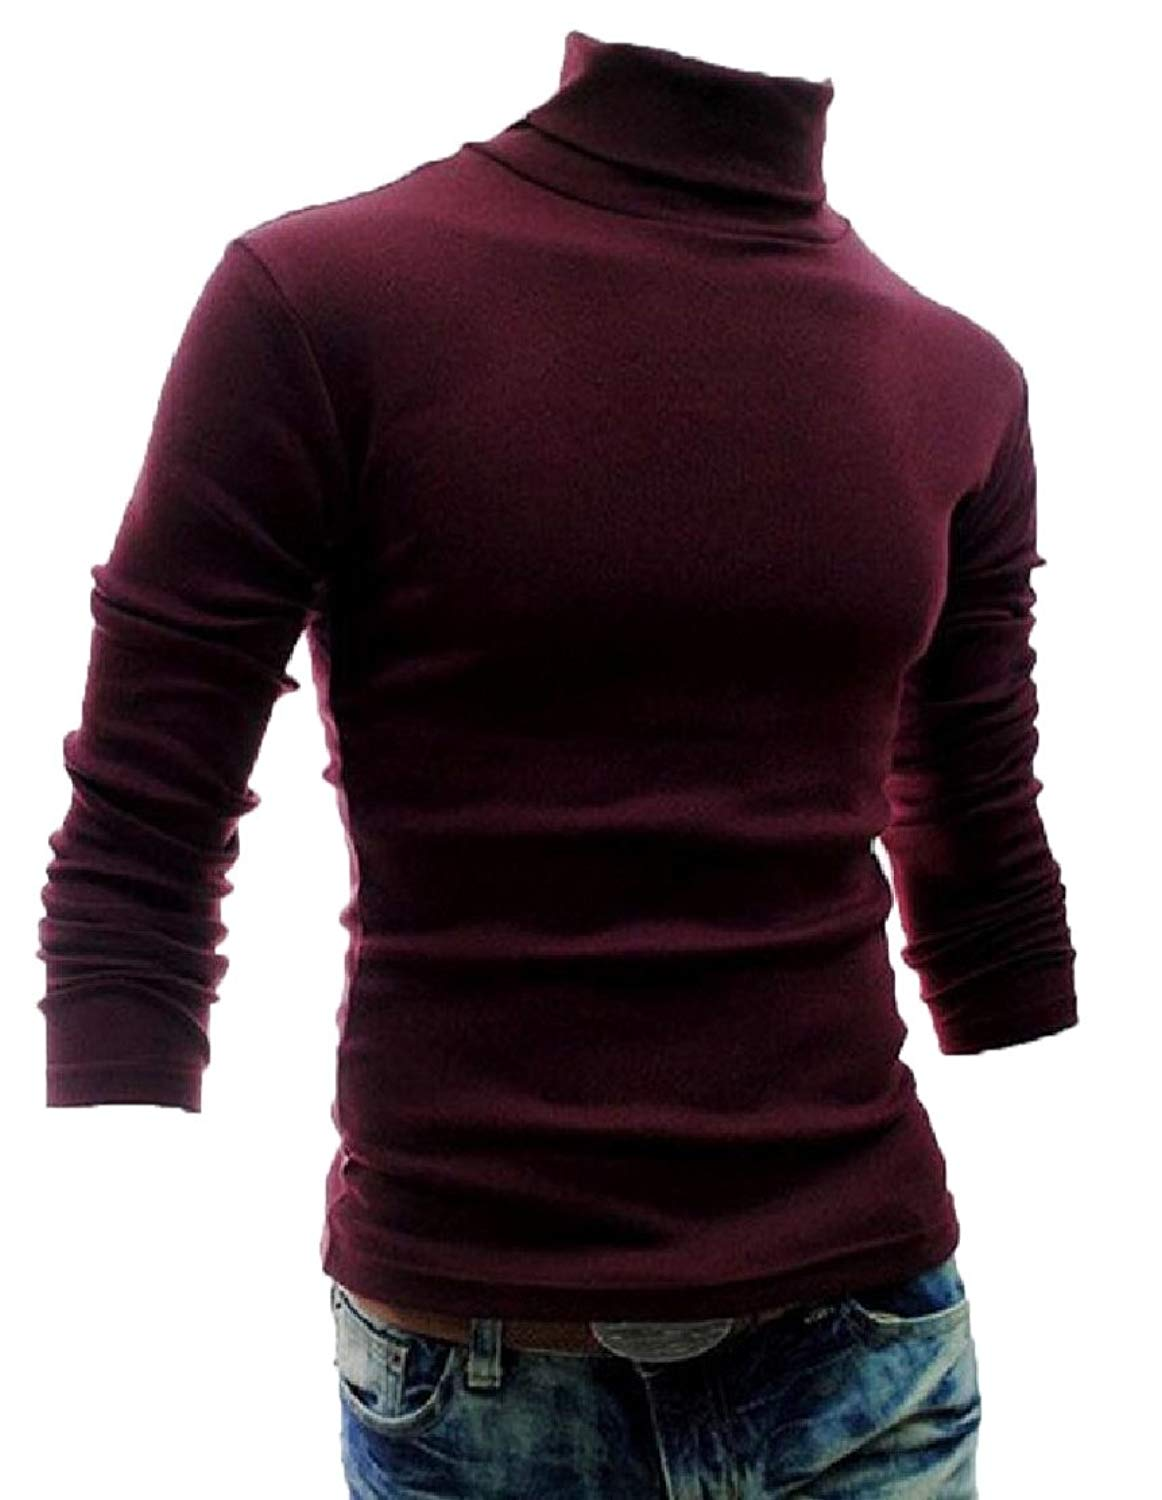 XQS Mens Slim Fit Basic Thermal Turtleneck Pullover Sweaters